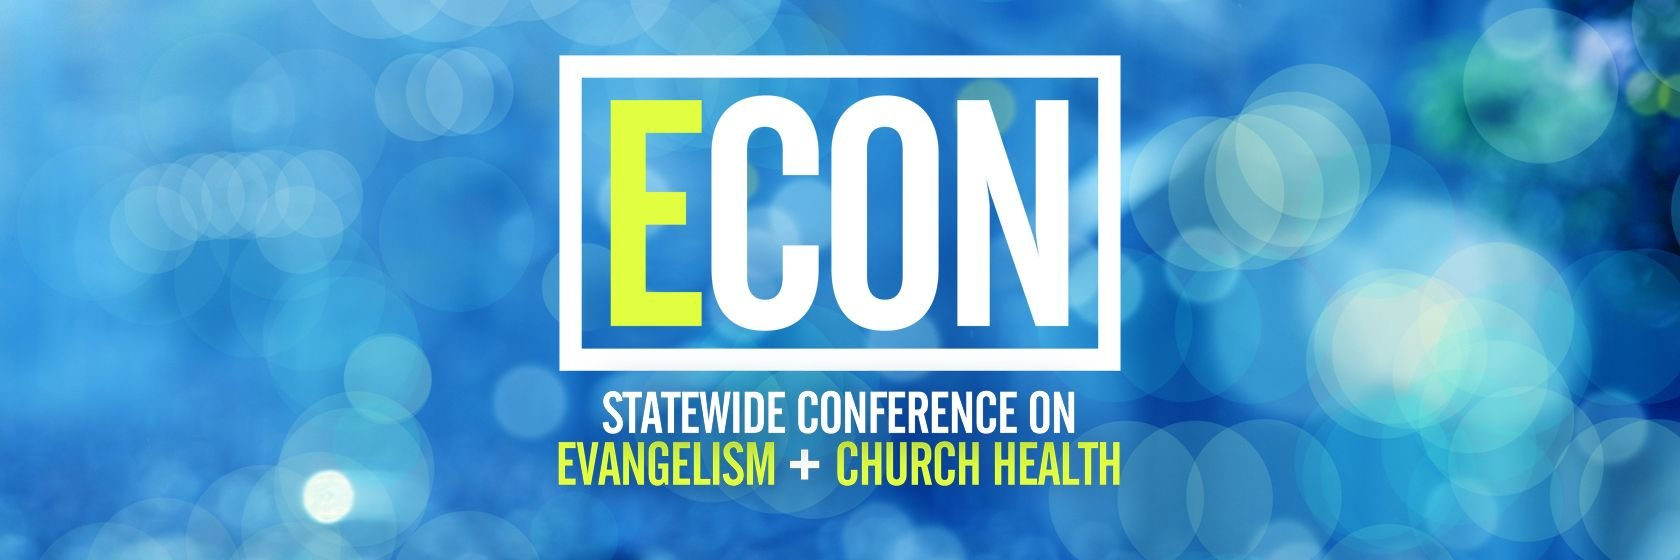 Make plans to join us January 27-28 at Geyer Springs First Baptist Church, Little Rock.